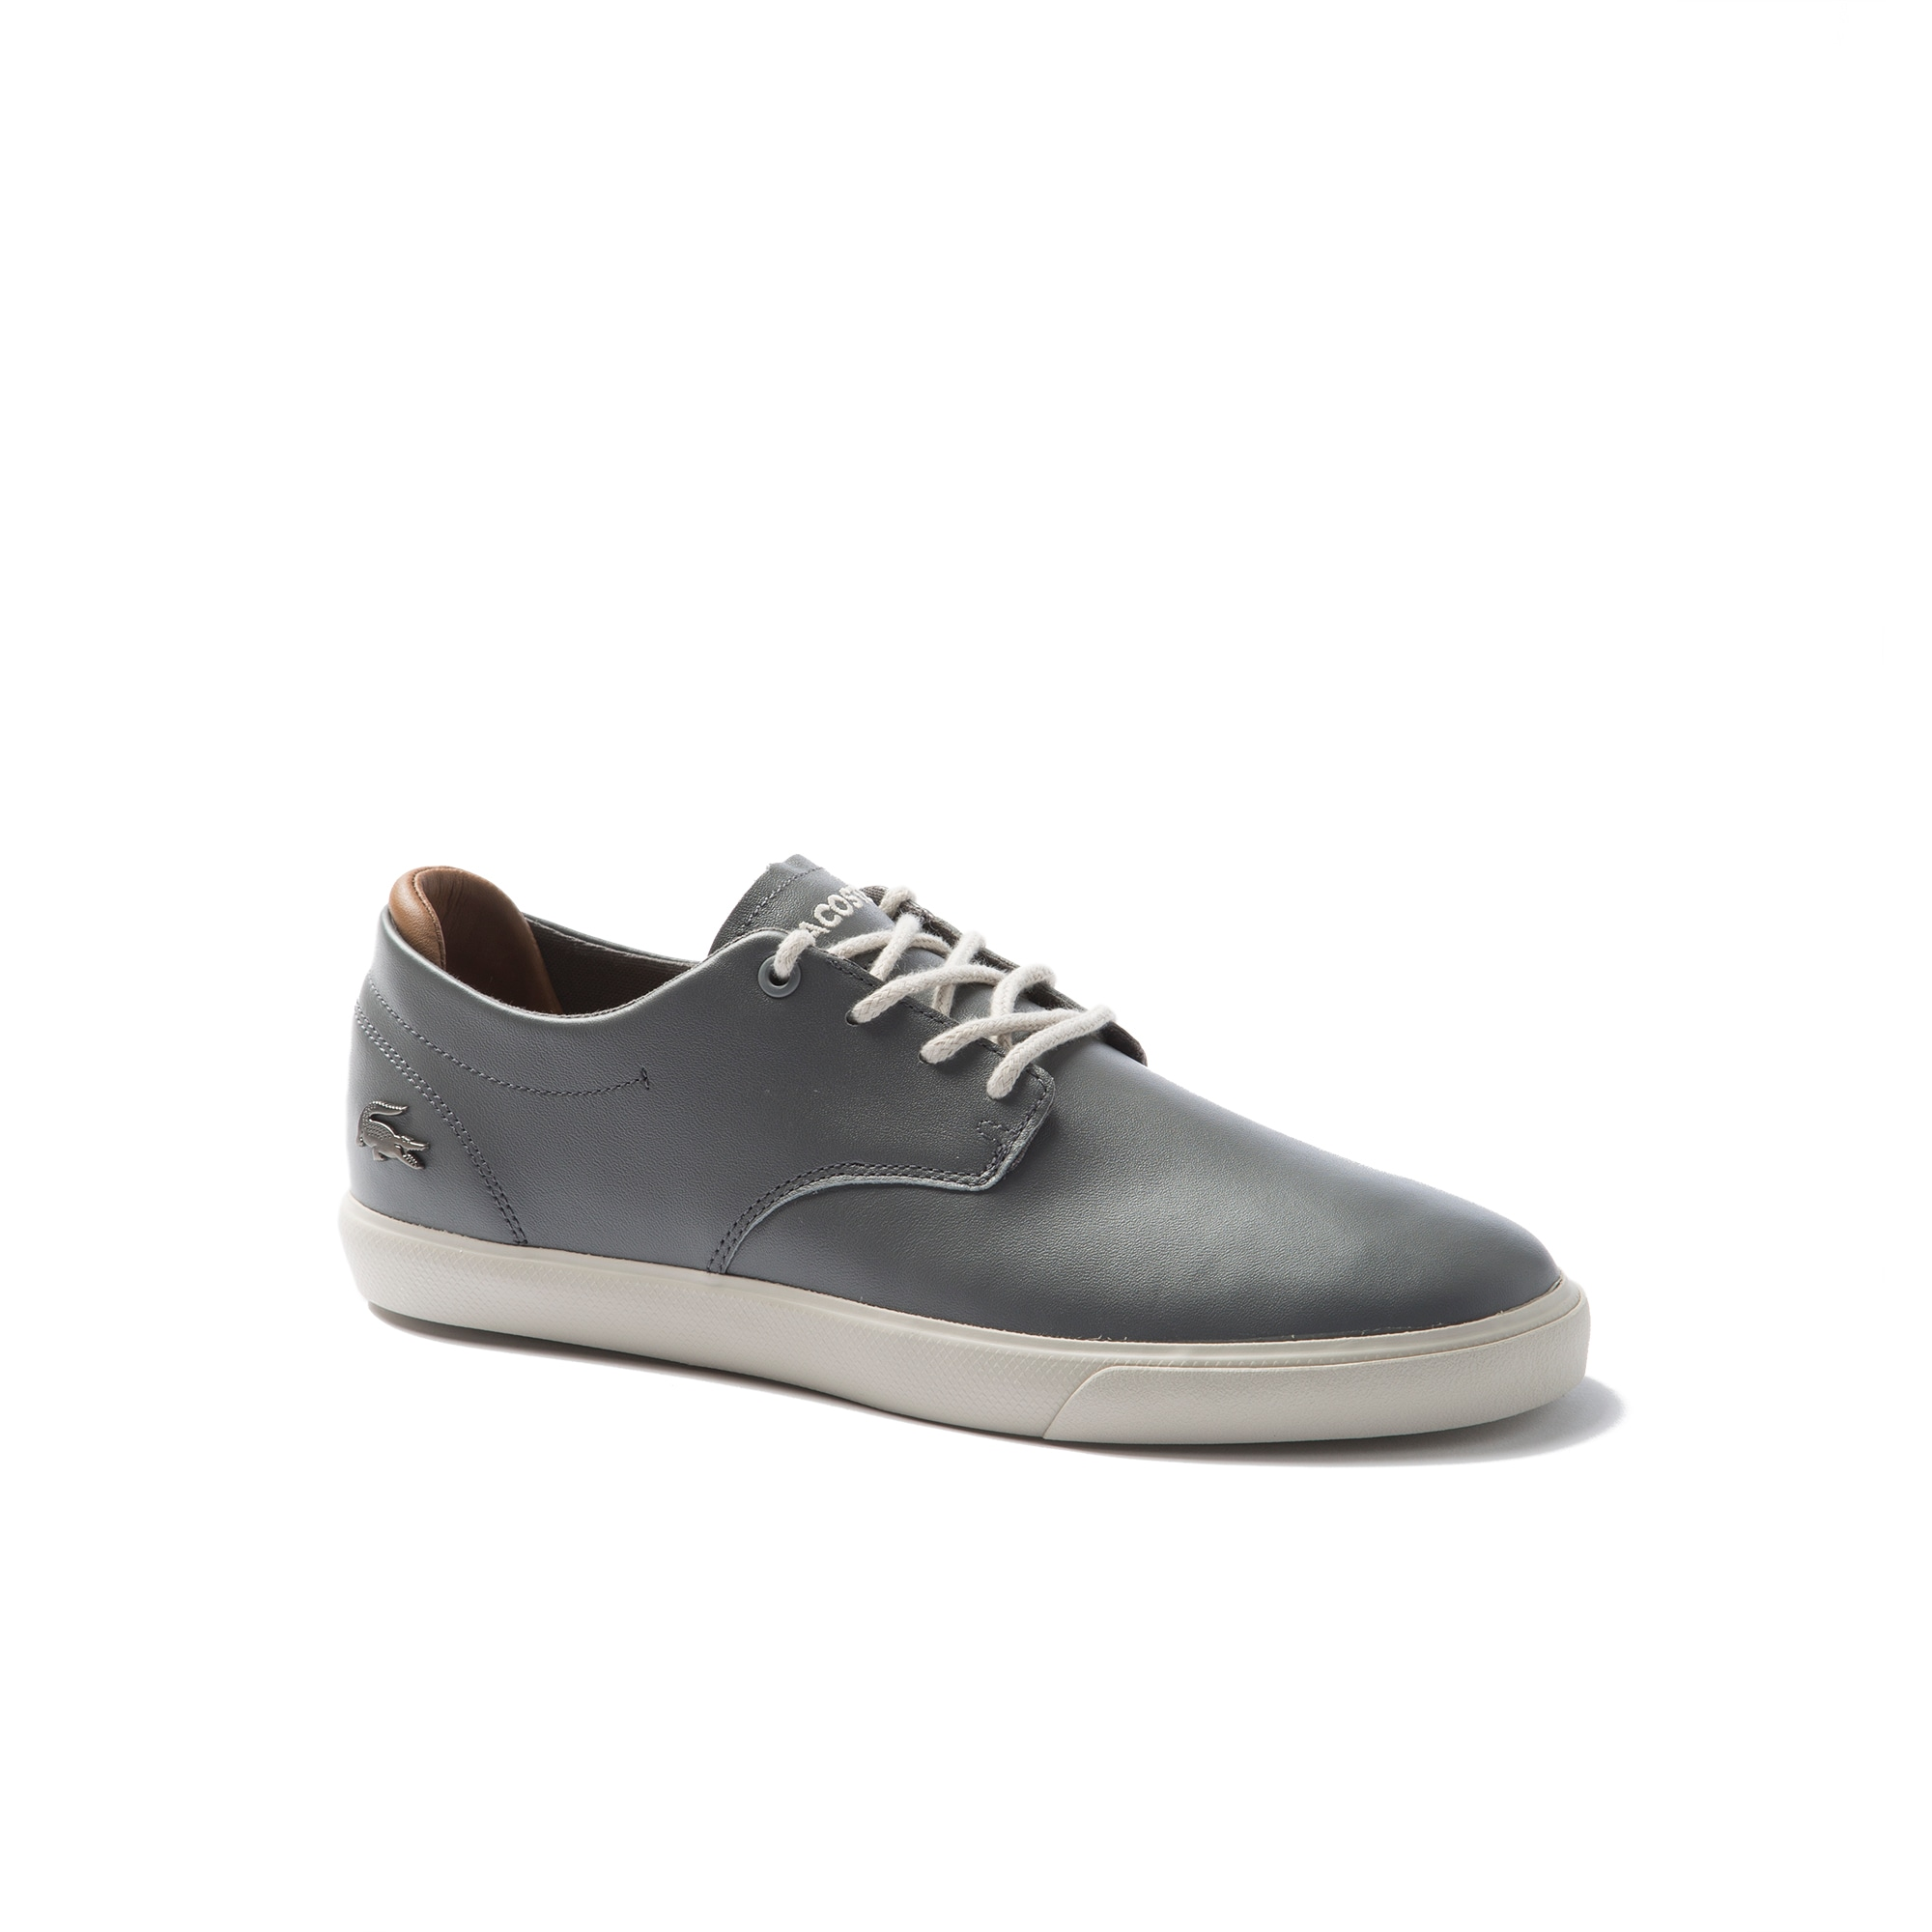 Men's Espere Leather Sneakers